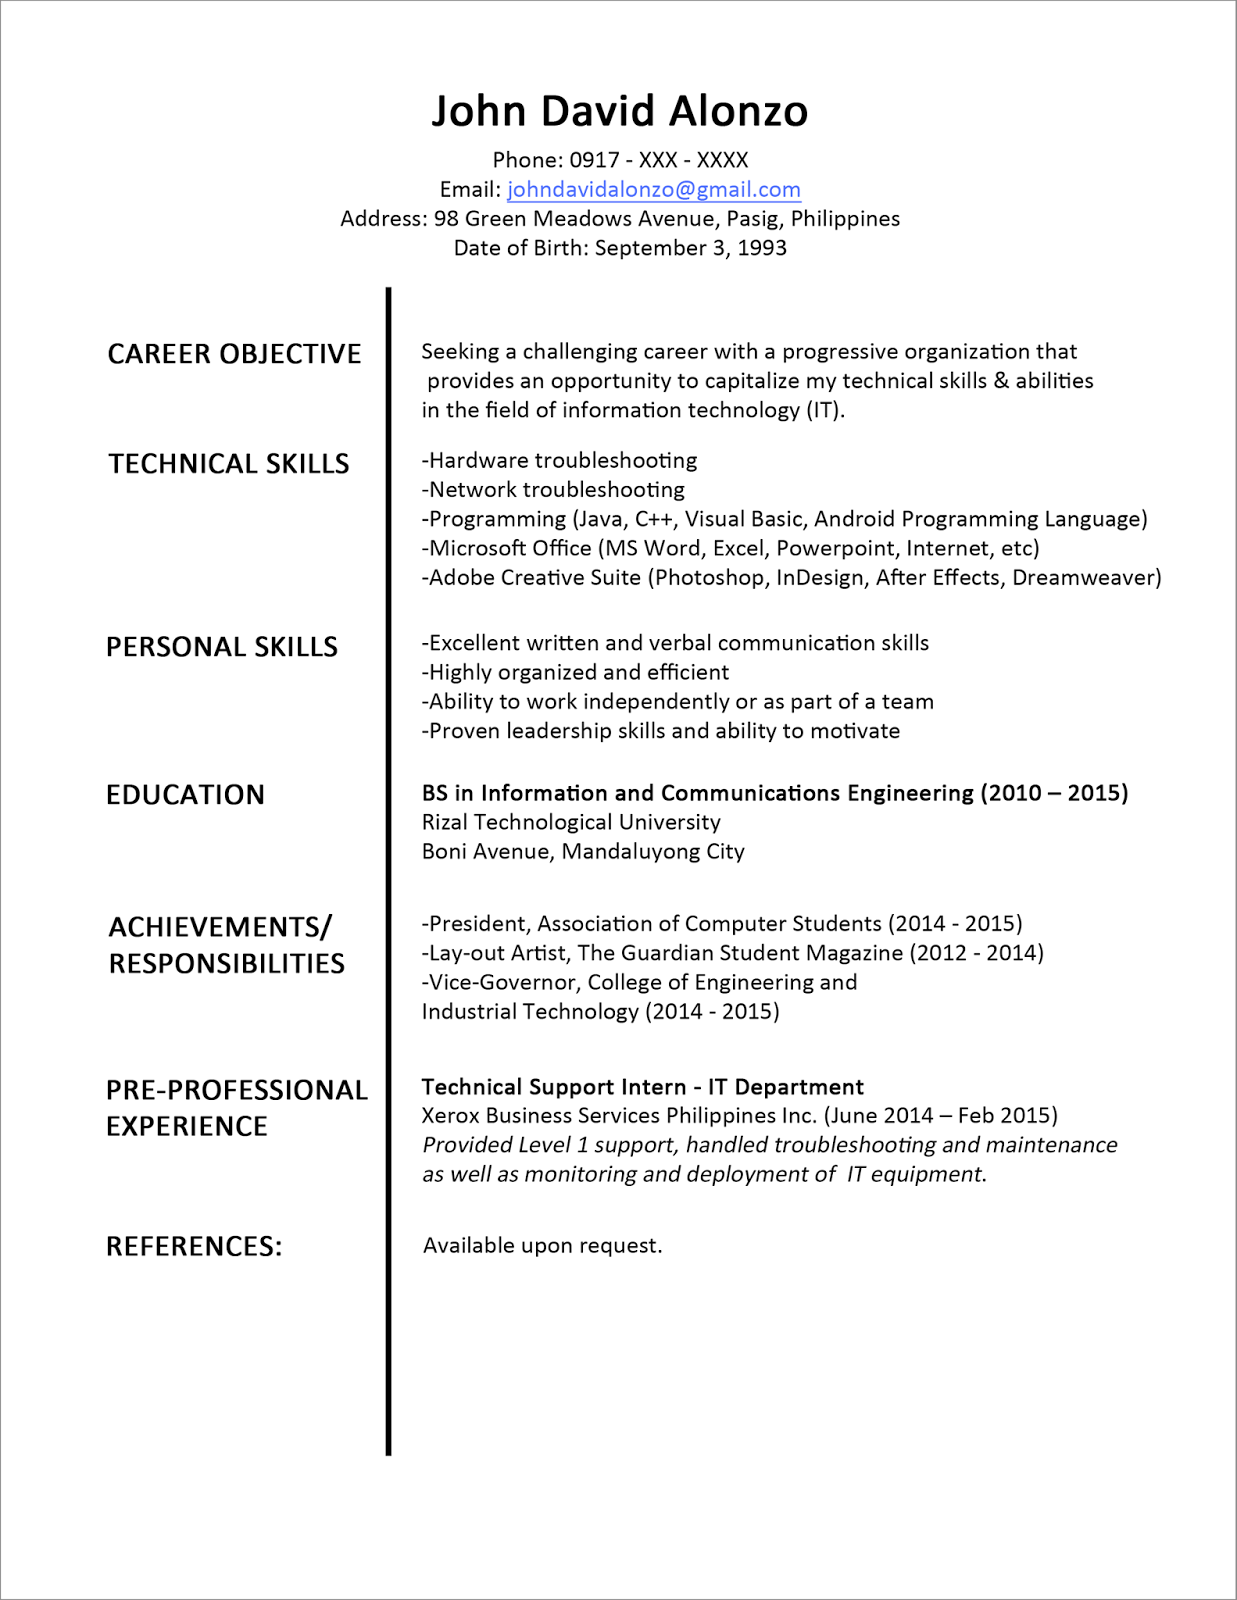 aaaaeroincus nice resume templates free download with likable professional curriculum vitae resume template for all job